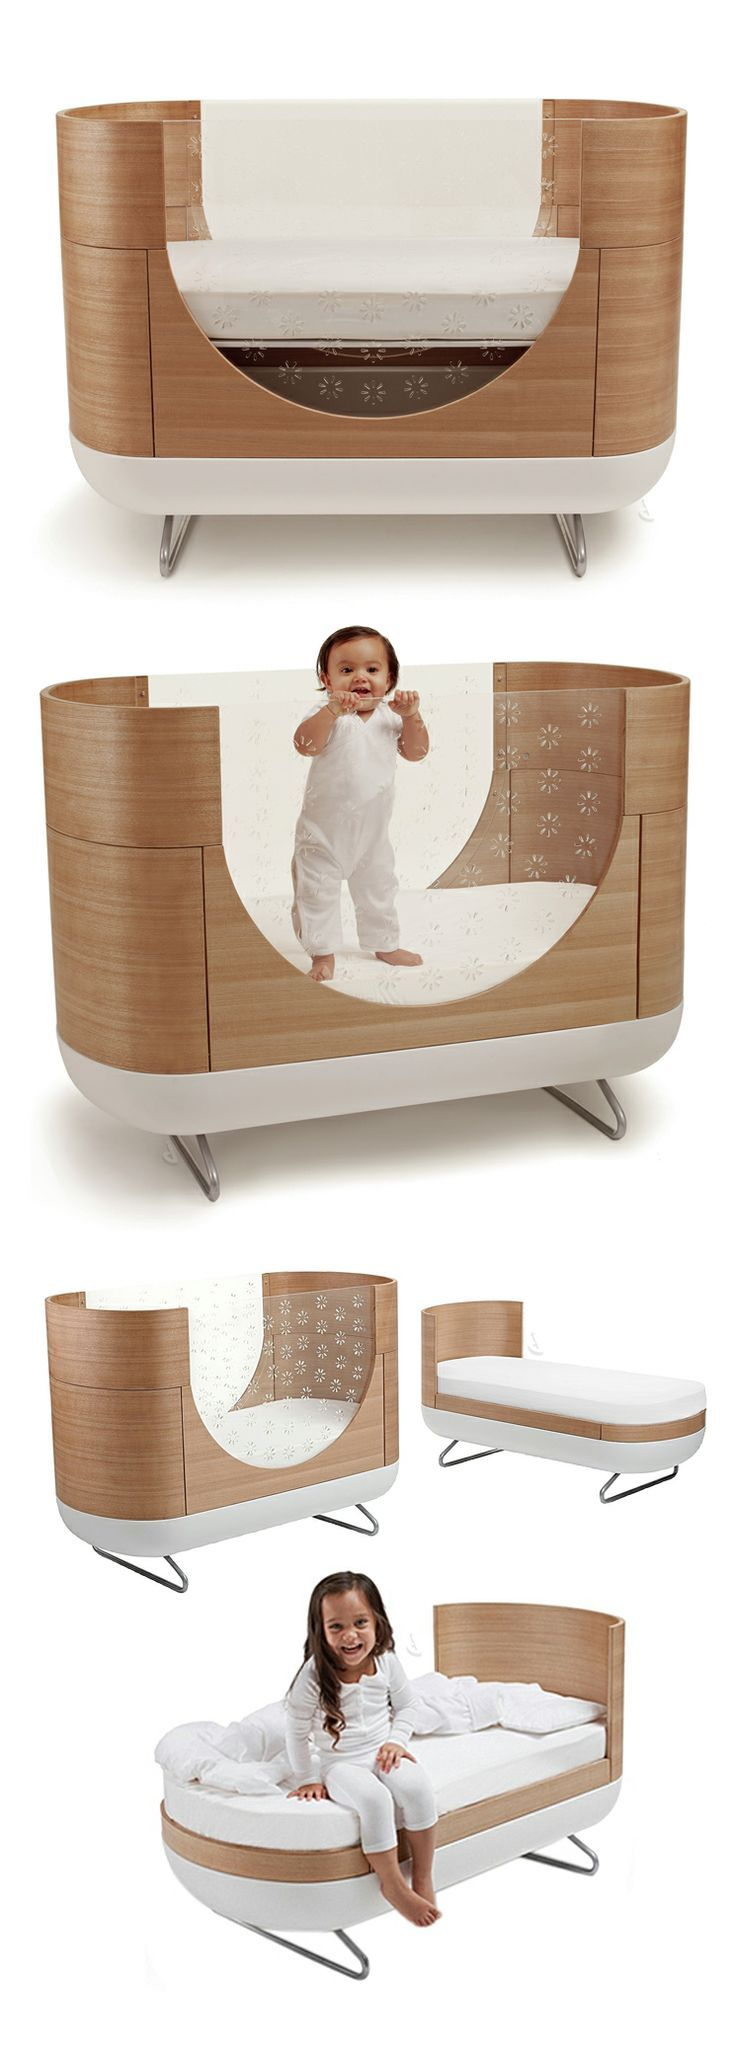 Baby bed turns into toddler bed - Modern Crib Converts Into A Toddler Bed